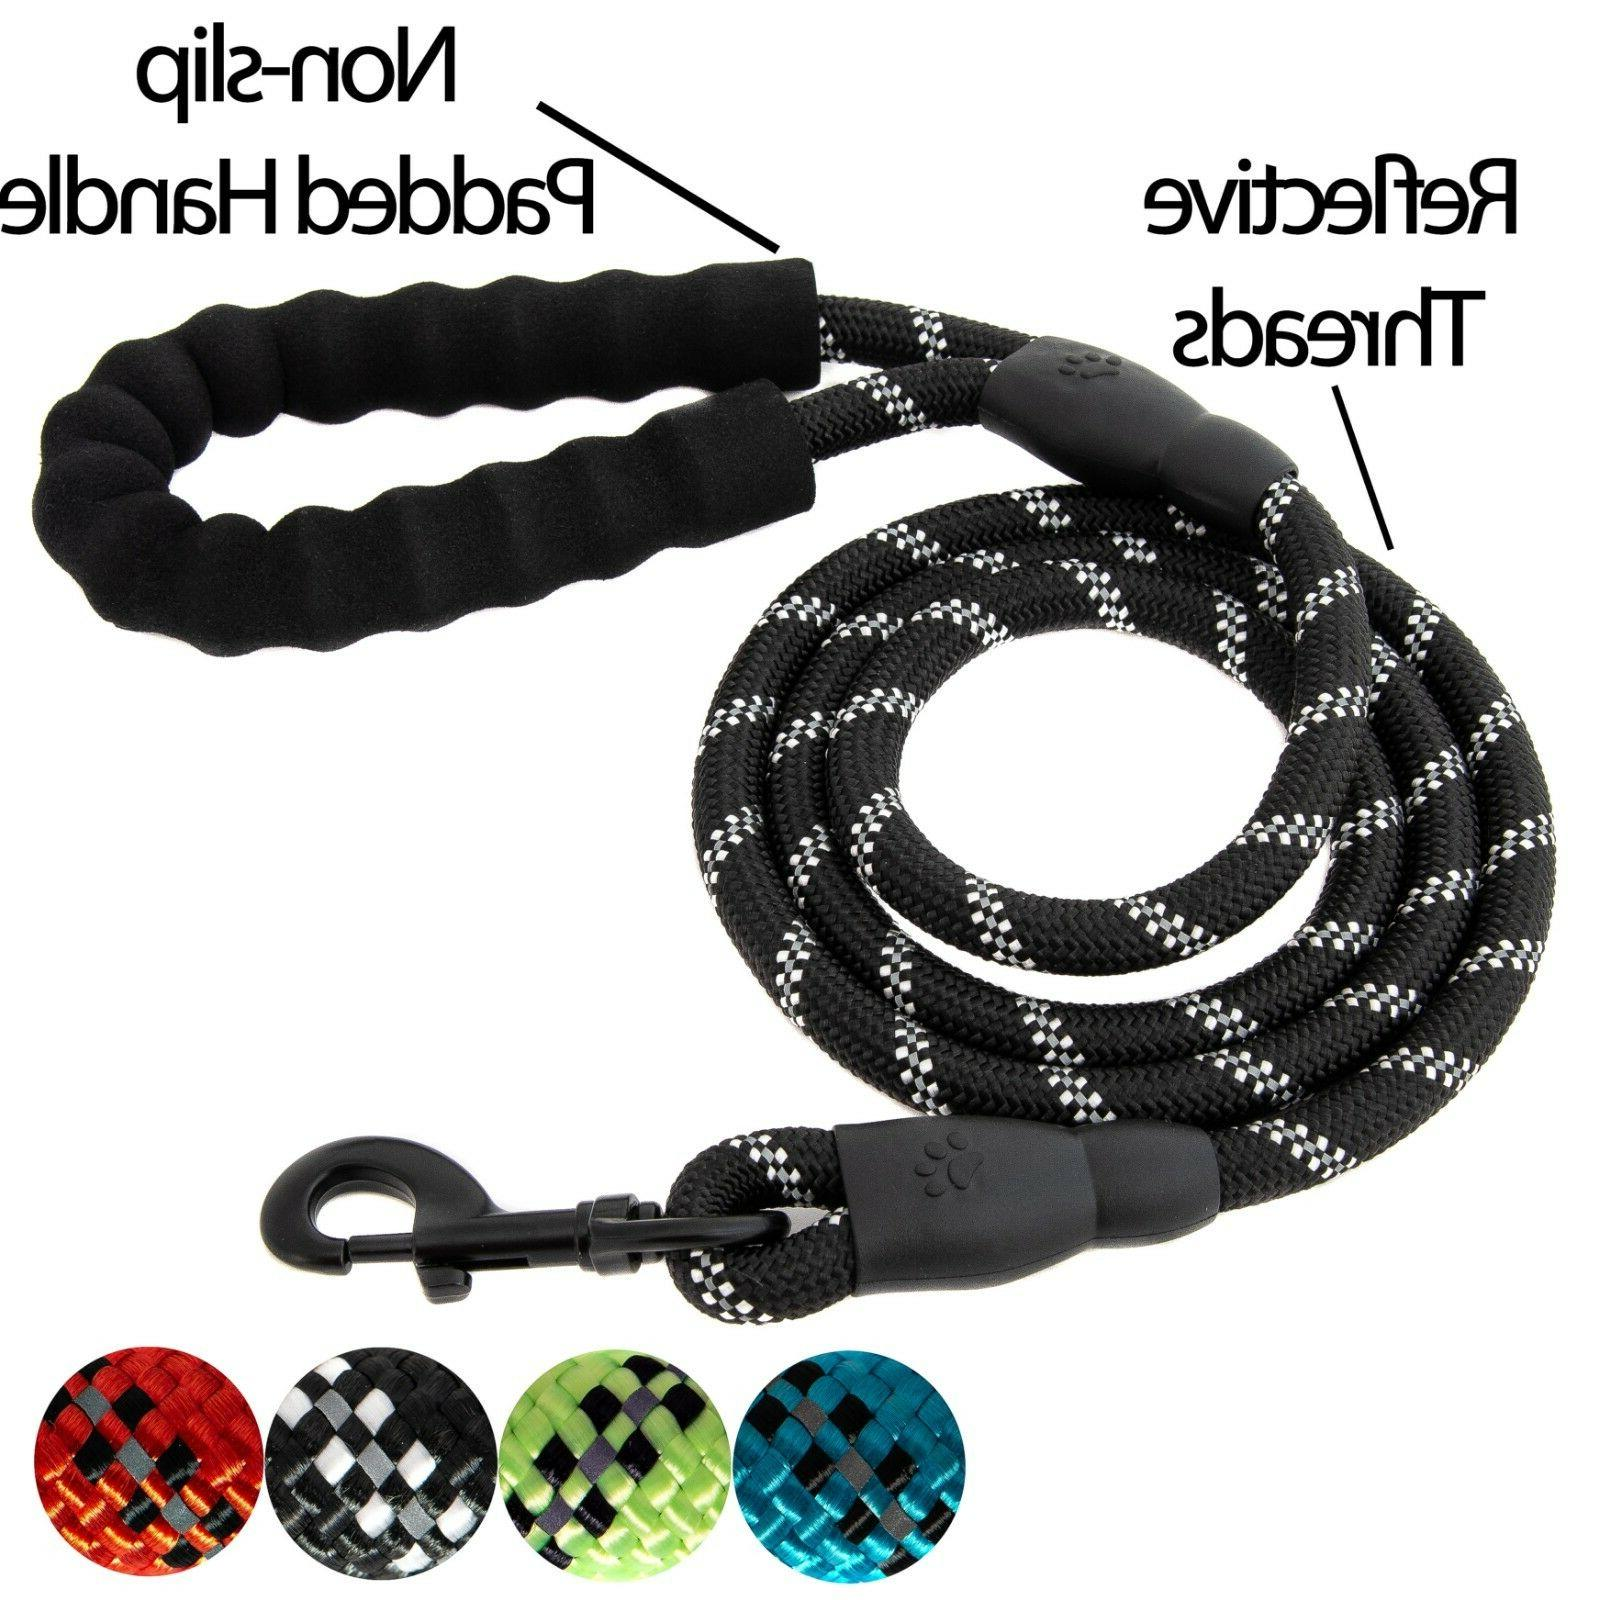 5 ft strong dog rope leash lead